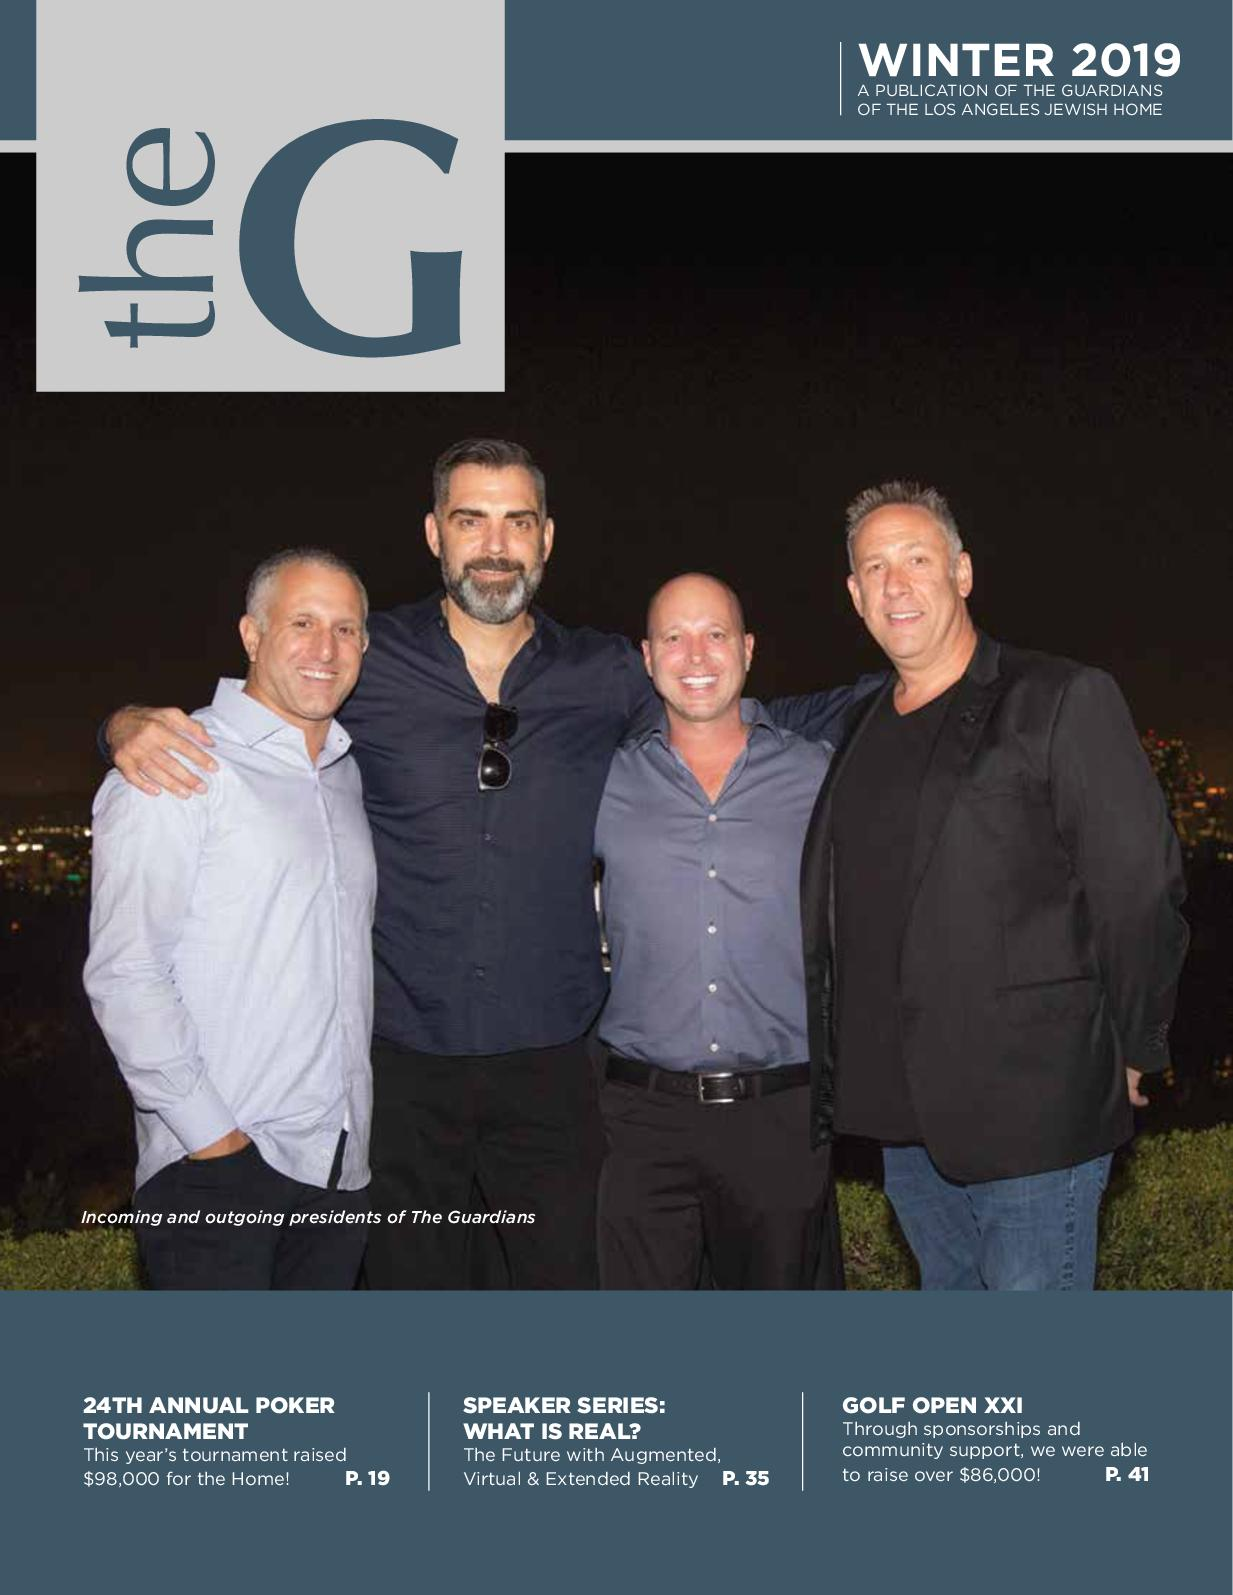 Calameo The Guardians Magazine Winter 2019